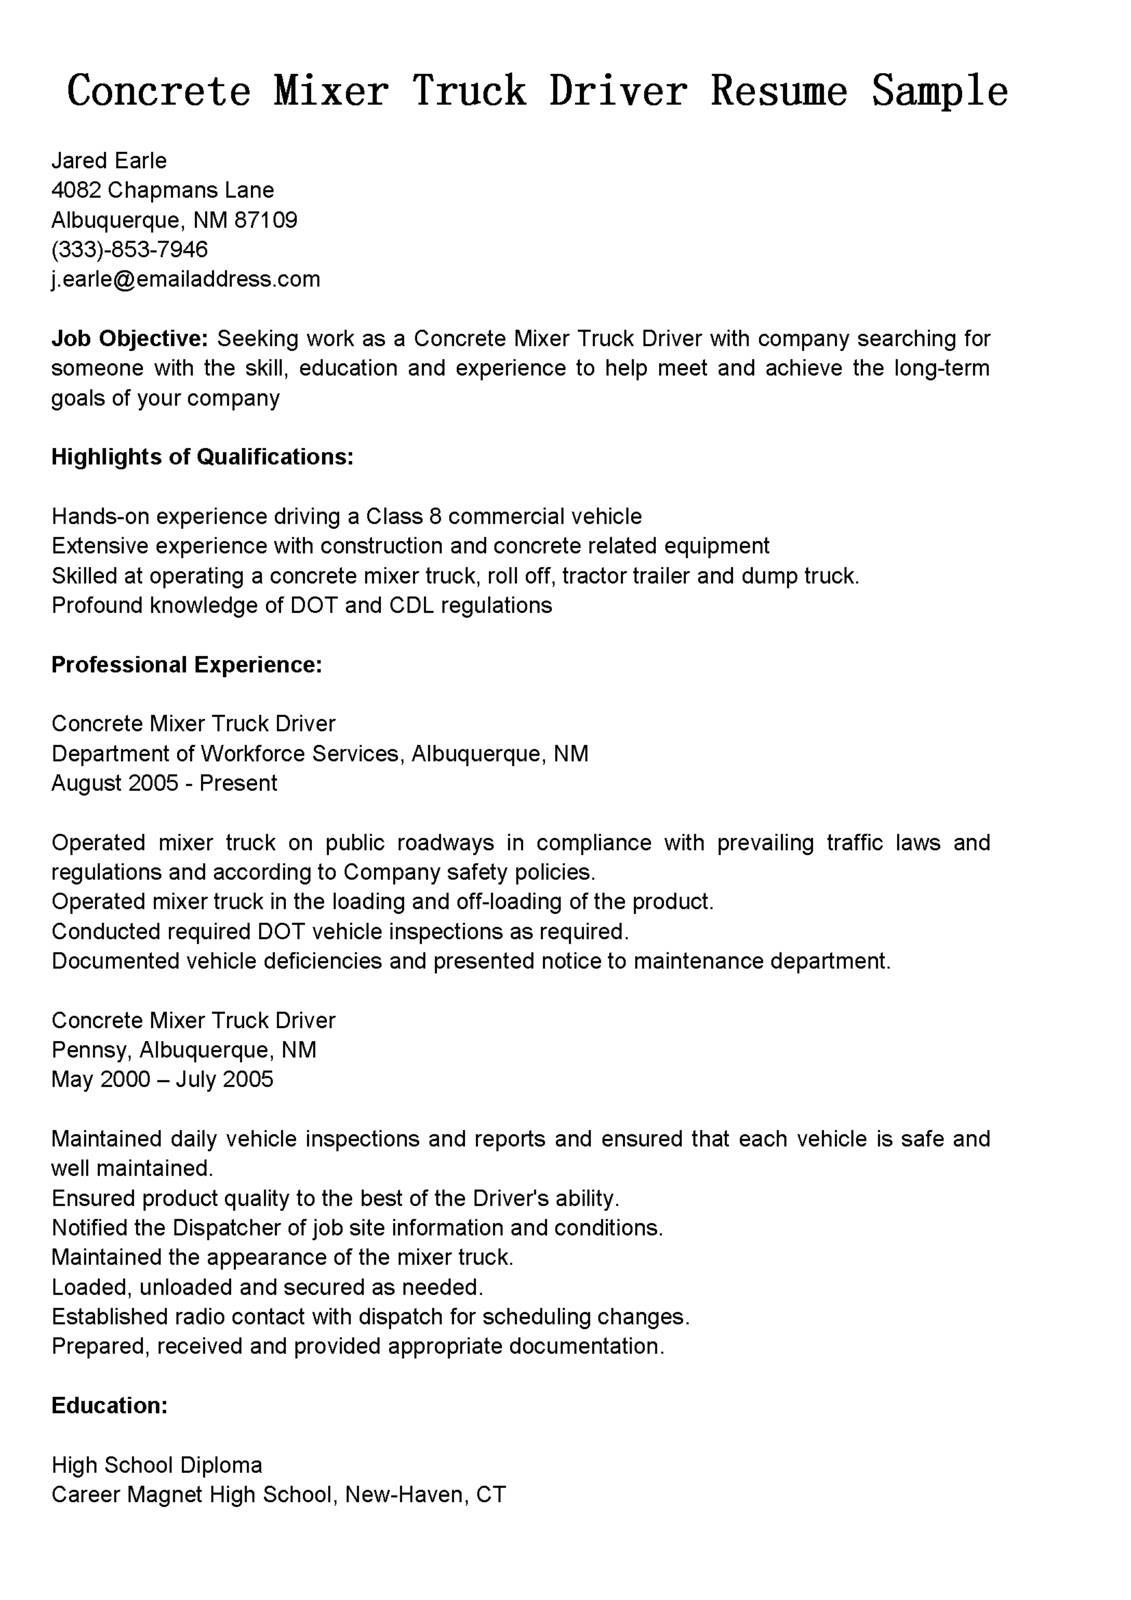 resume Truck Driver Description For Resume truck driver job description for resume ilivearticles within company twhois resume